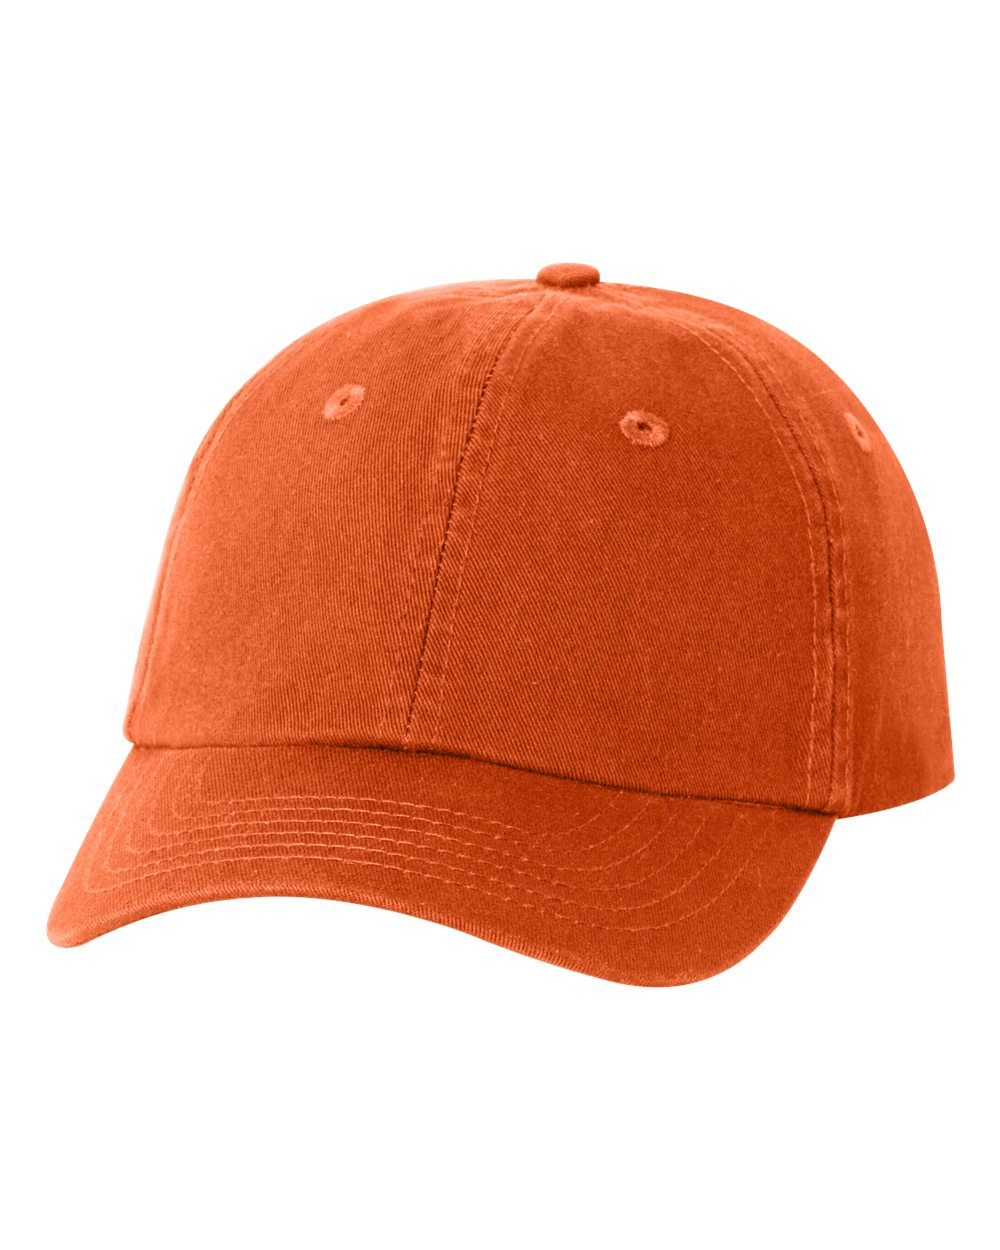 Valucap VC300Y - Small Fit/Ladies Bio-Washed Dad Cap